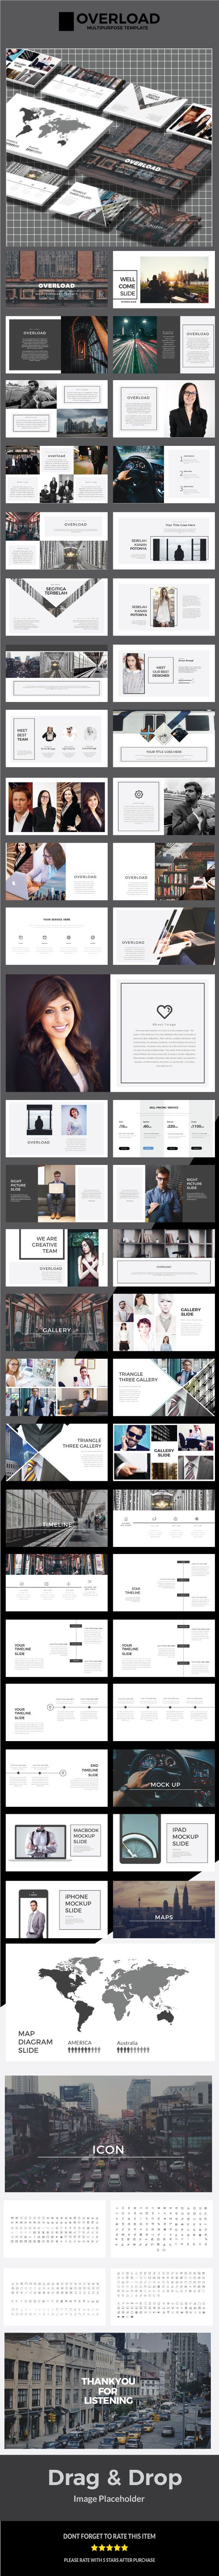 OVERLOAD Keynote Template - Business #Keynote #Templates Download here: https://graphicriver.net/item/overload-keynote-template/19482993?ref=alena994